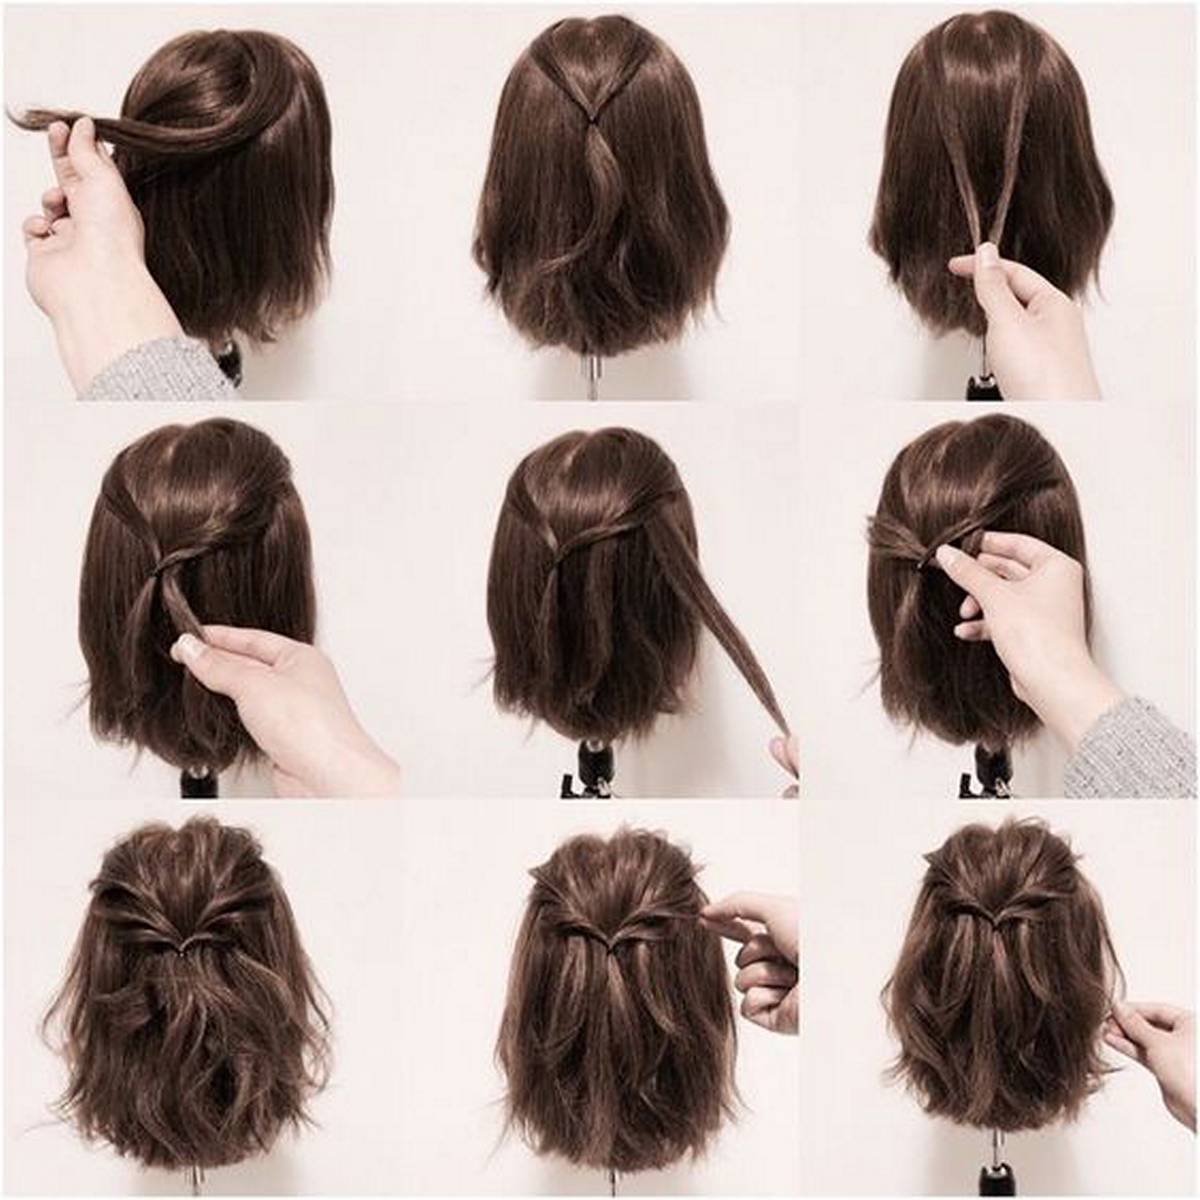 Hairstyles diy and tutorial for all hair lengths 192 | fashion